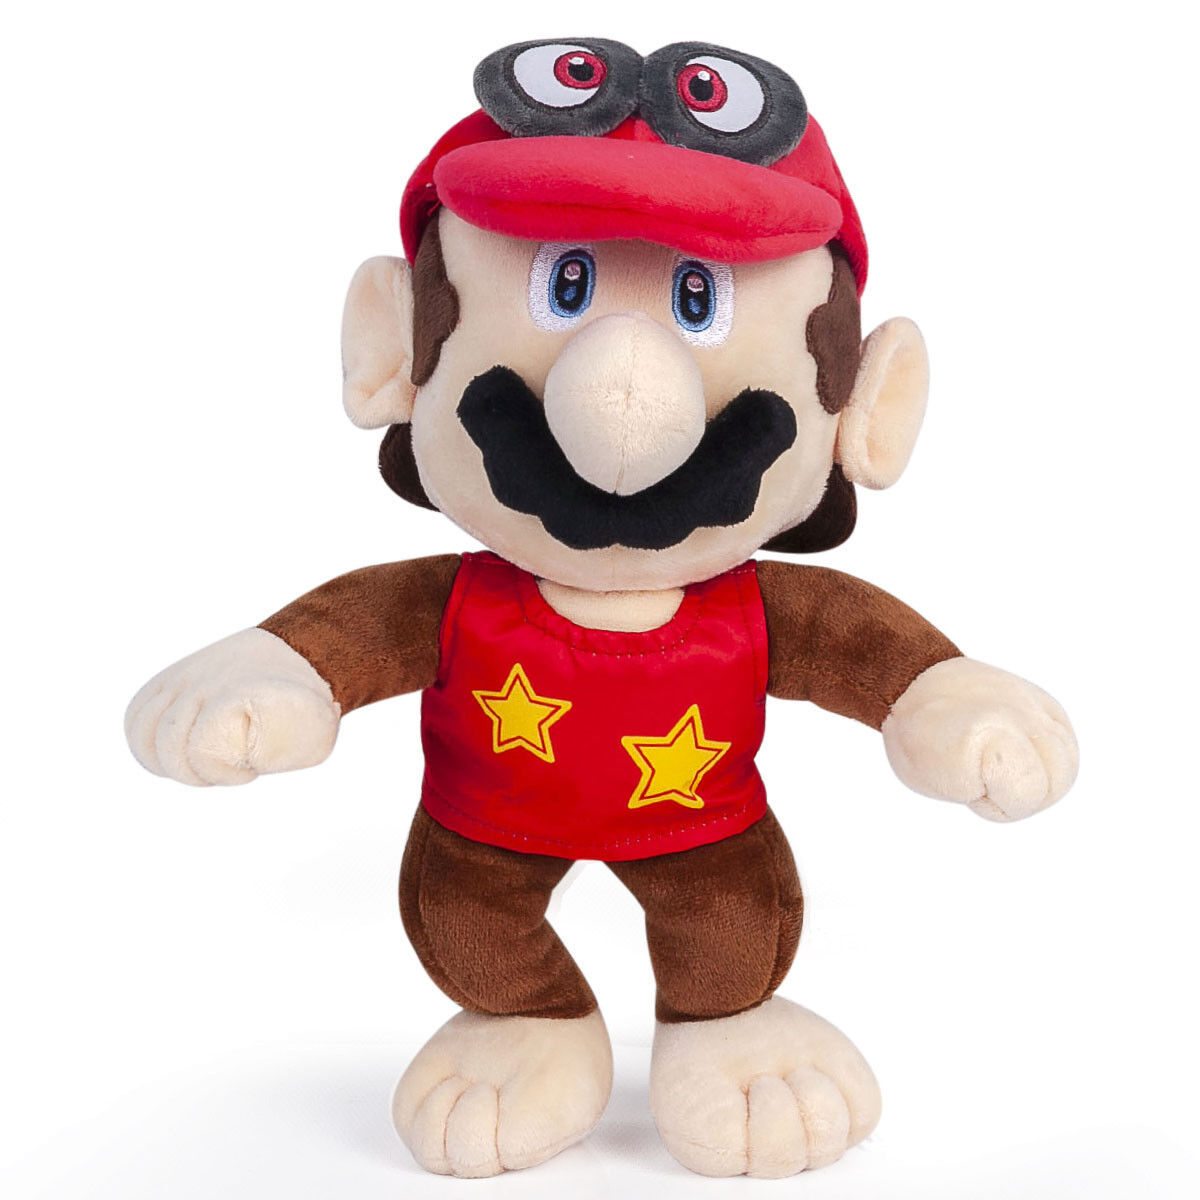 Super Mario Bros Lovely Diddy Kong Donkey Kong Plush Doll Soft Toy Figure 7/""